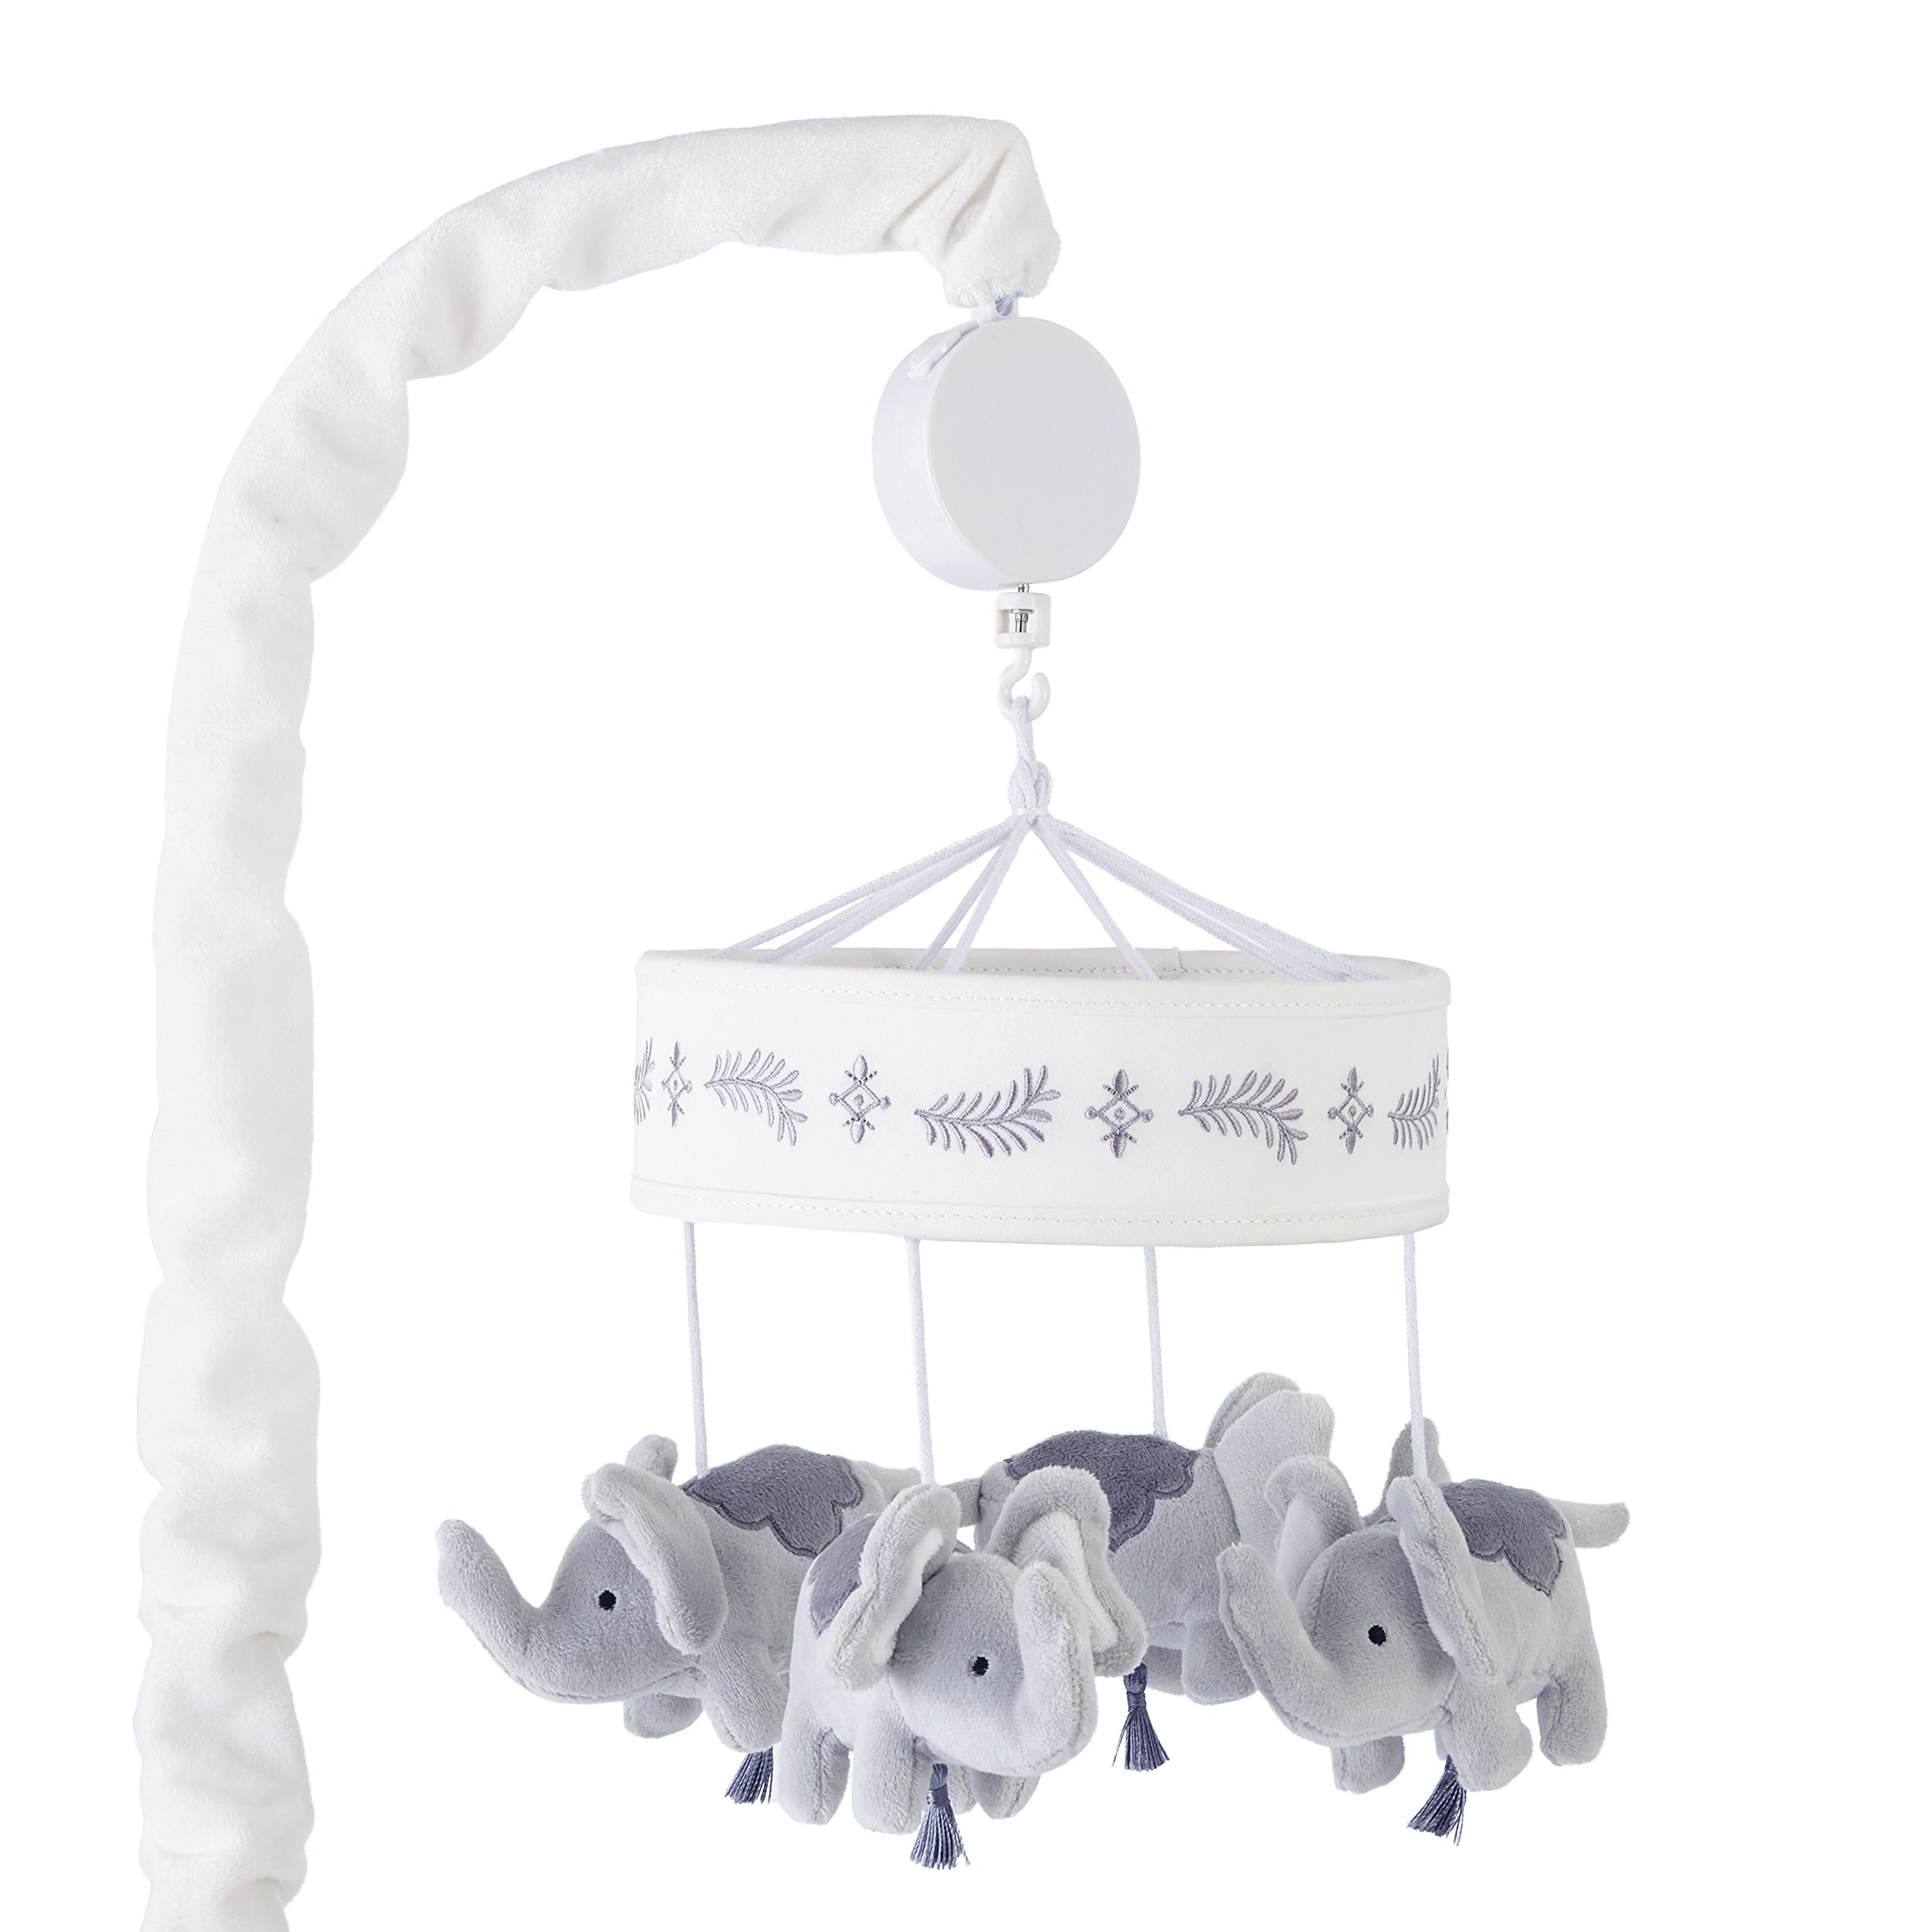 Levtex Home Baby Jungalo Grey Elephant Plush Crib Mobile